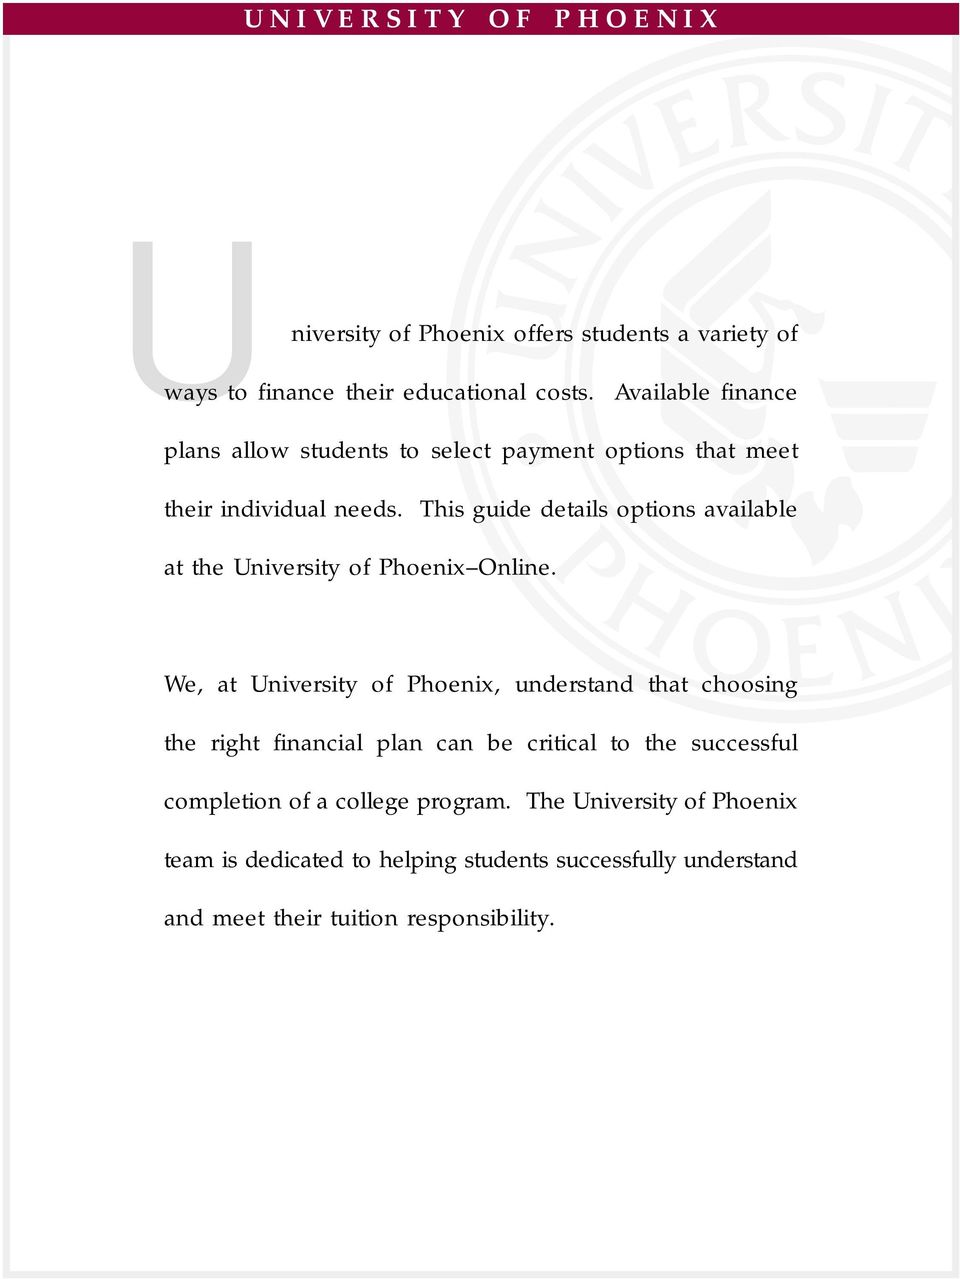 University of Phoenix offers students a variety of - PDF